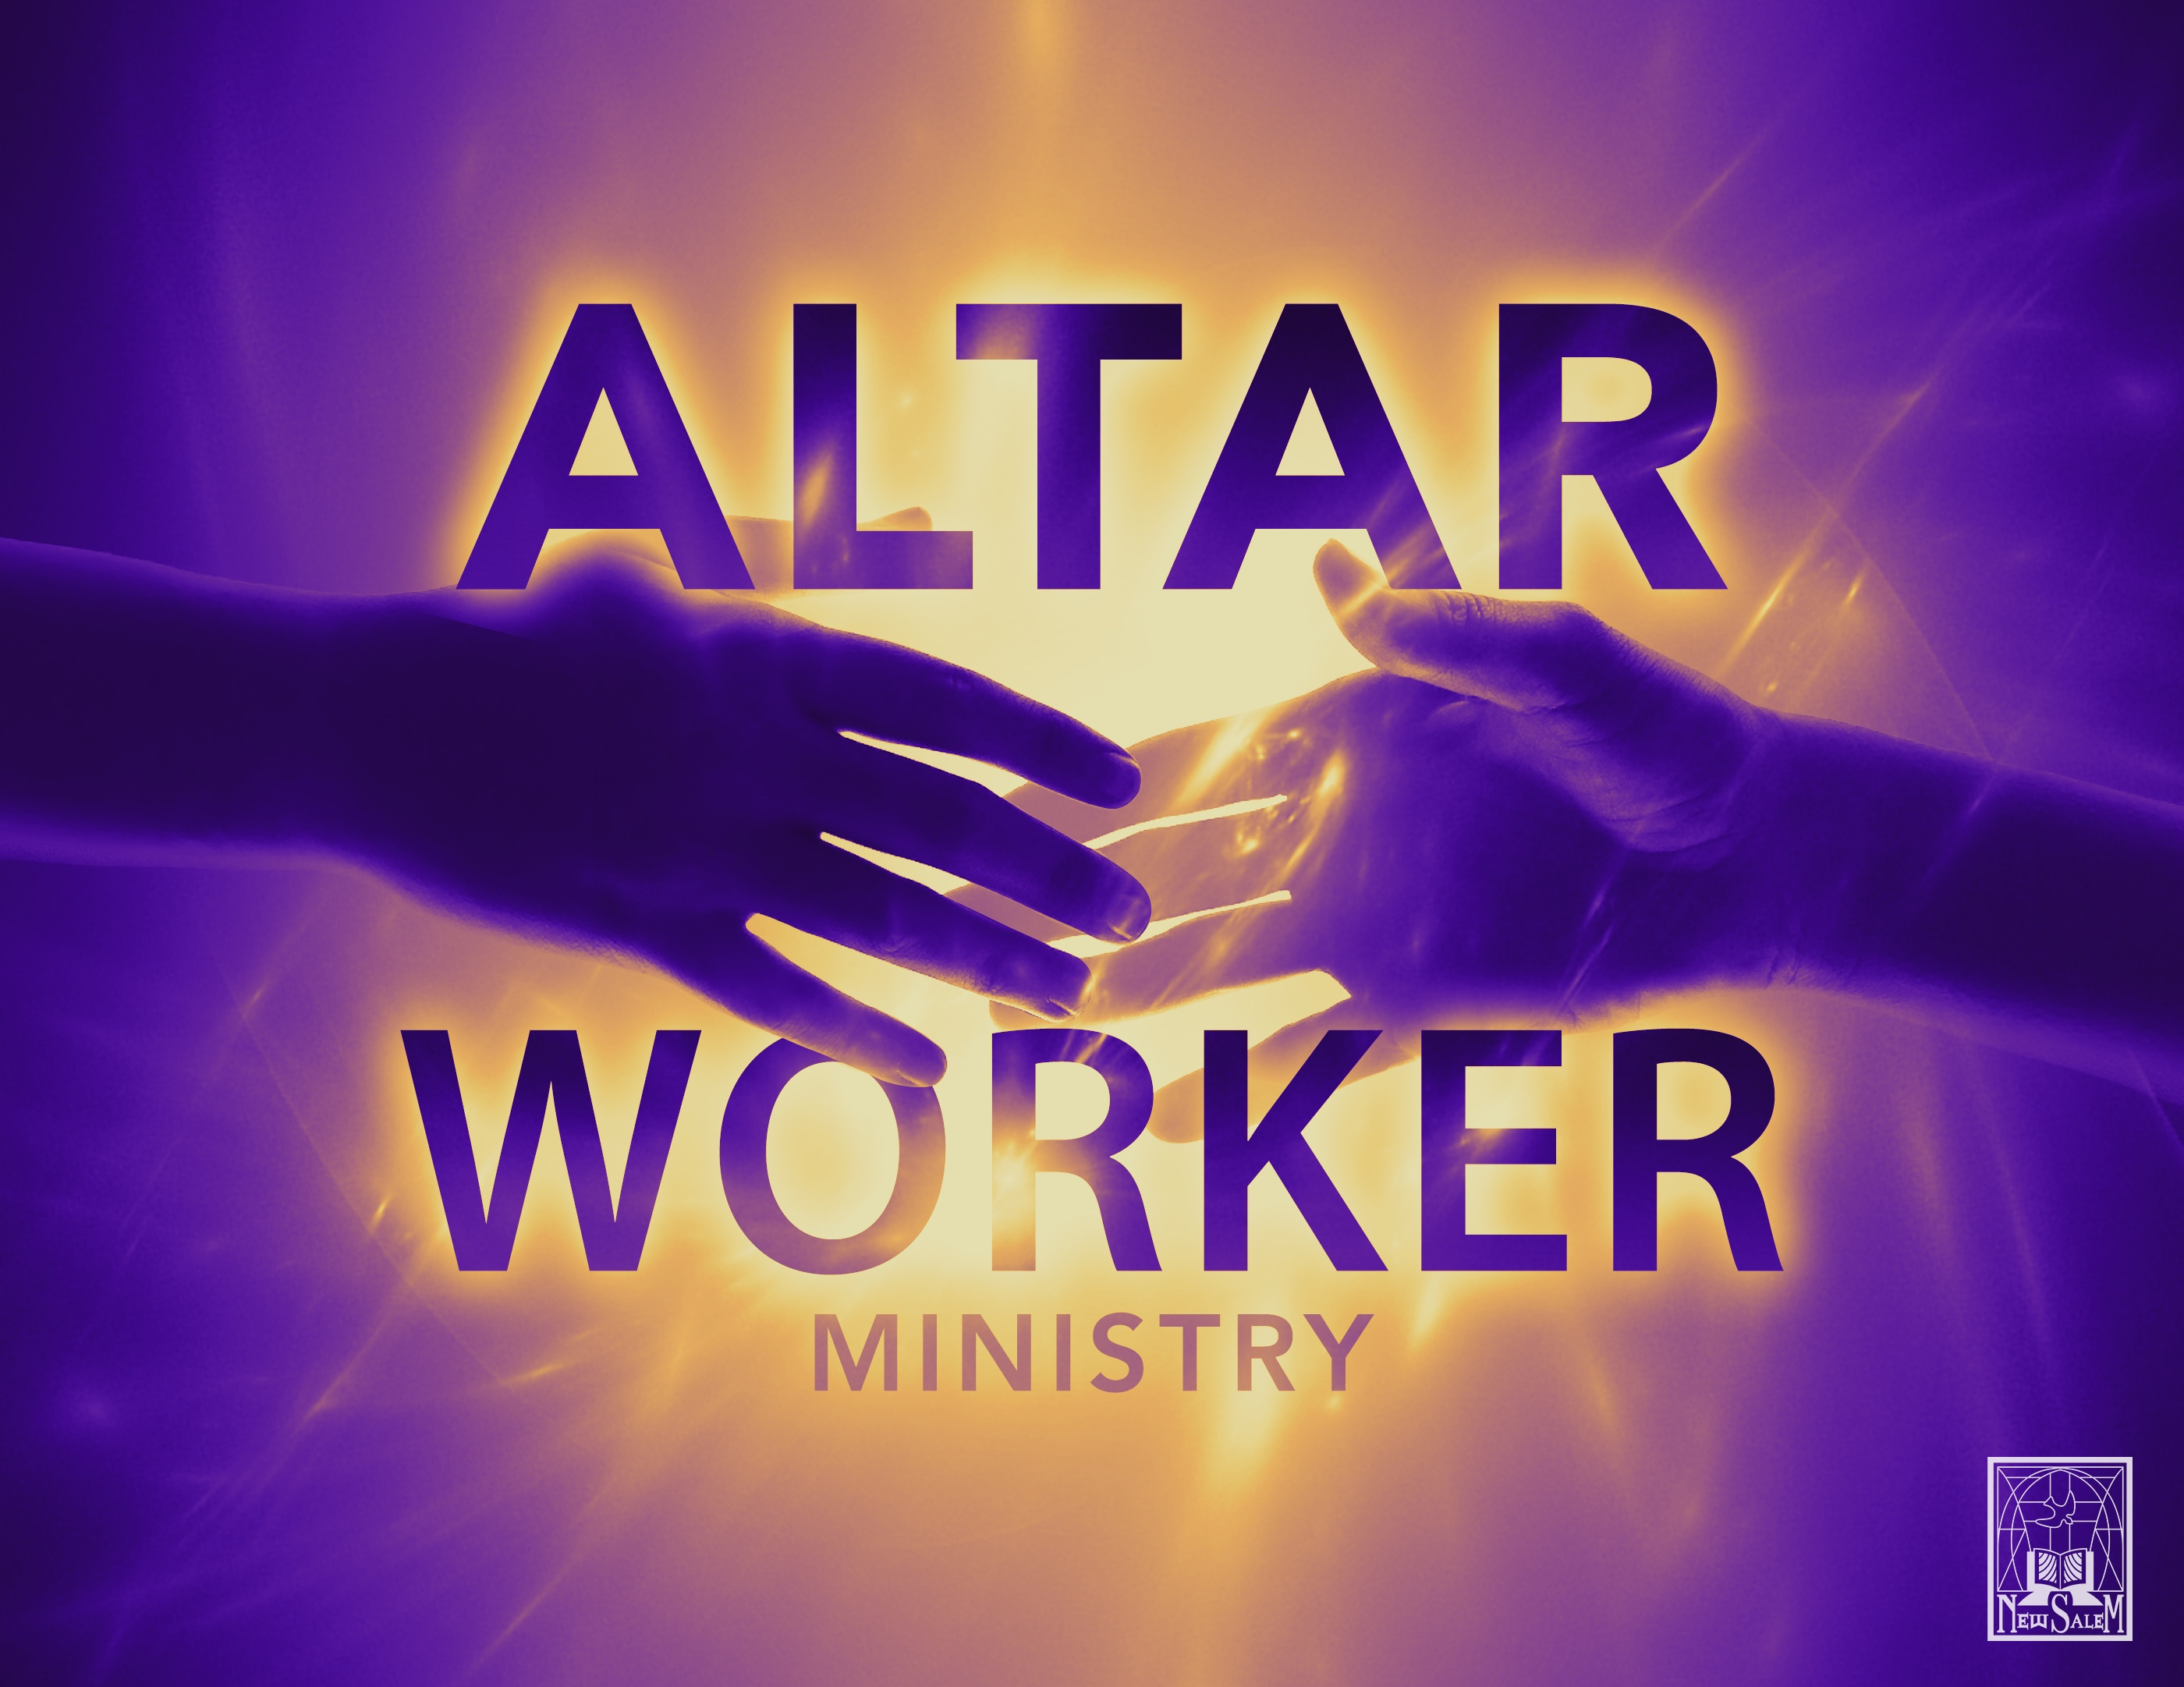 Altar Workers Ministry